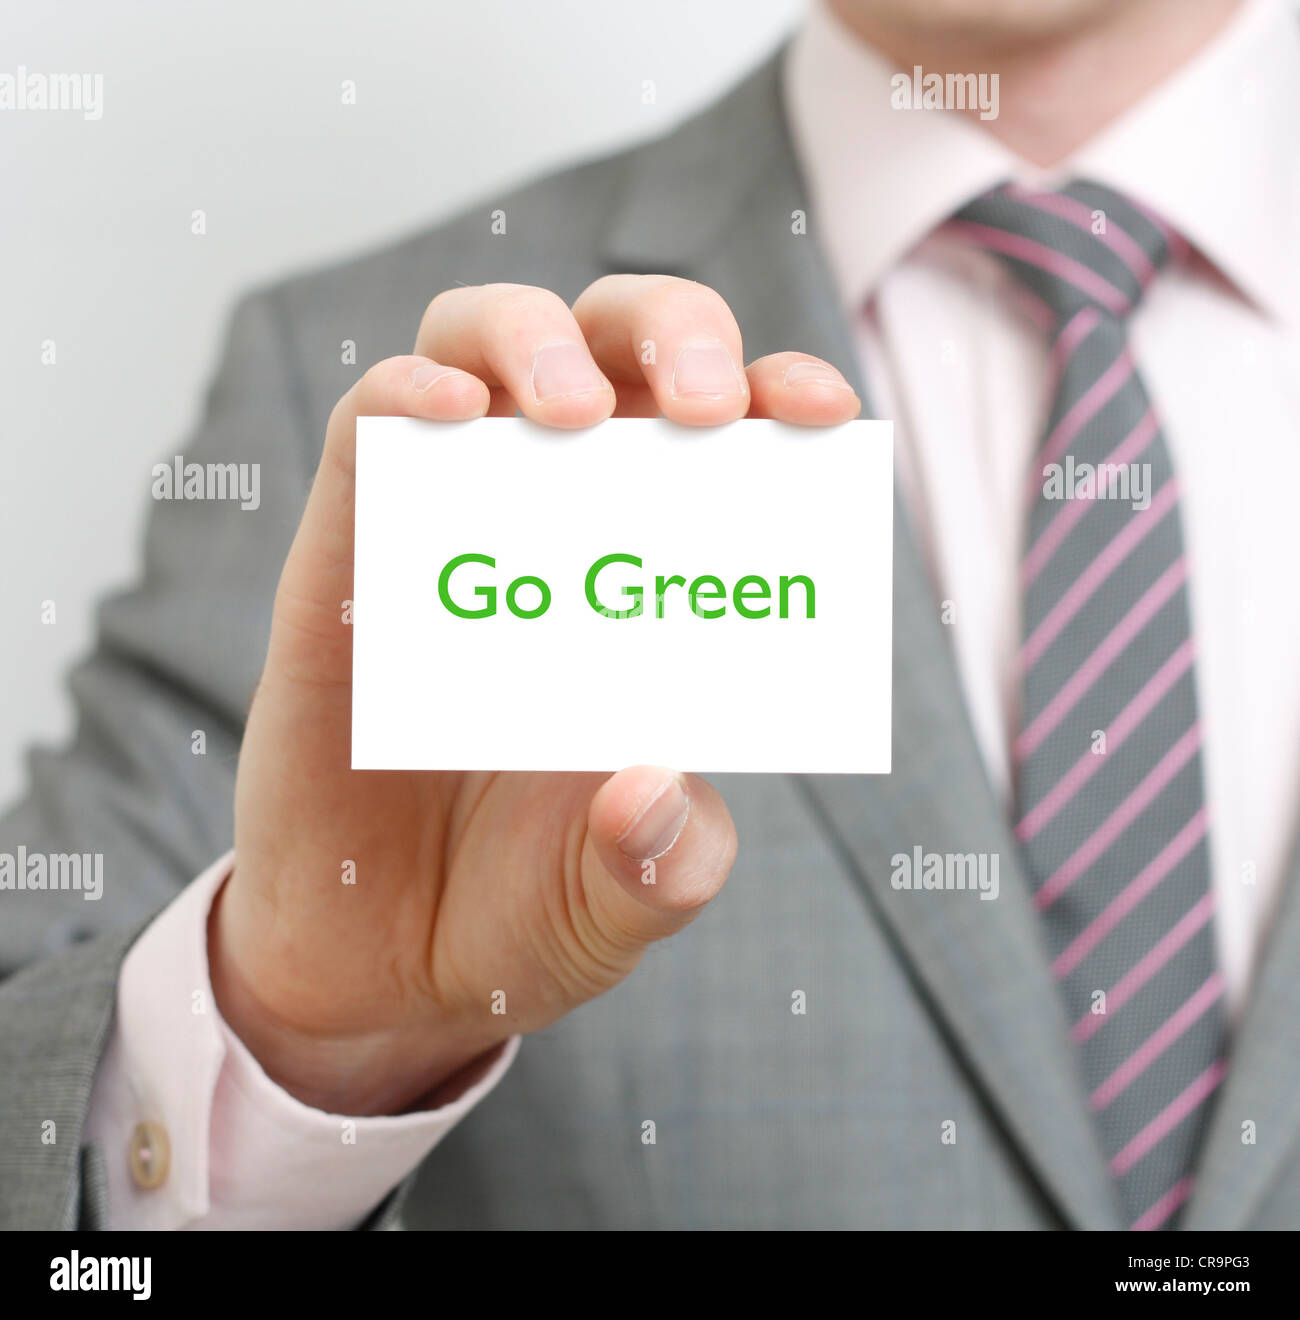 Go green - Stock Image